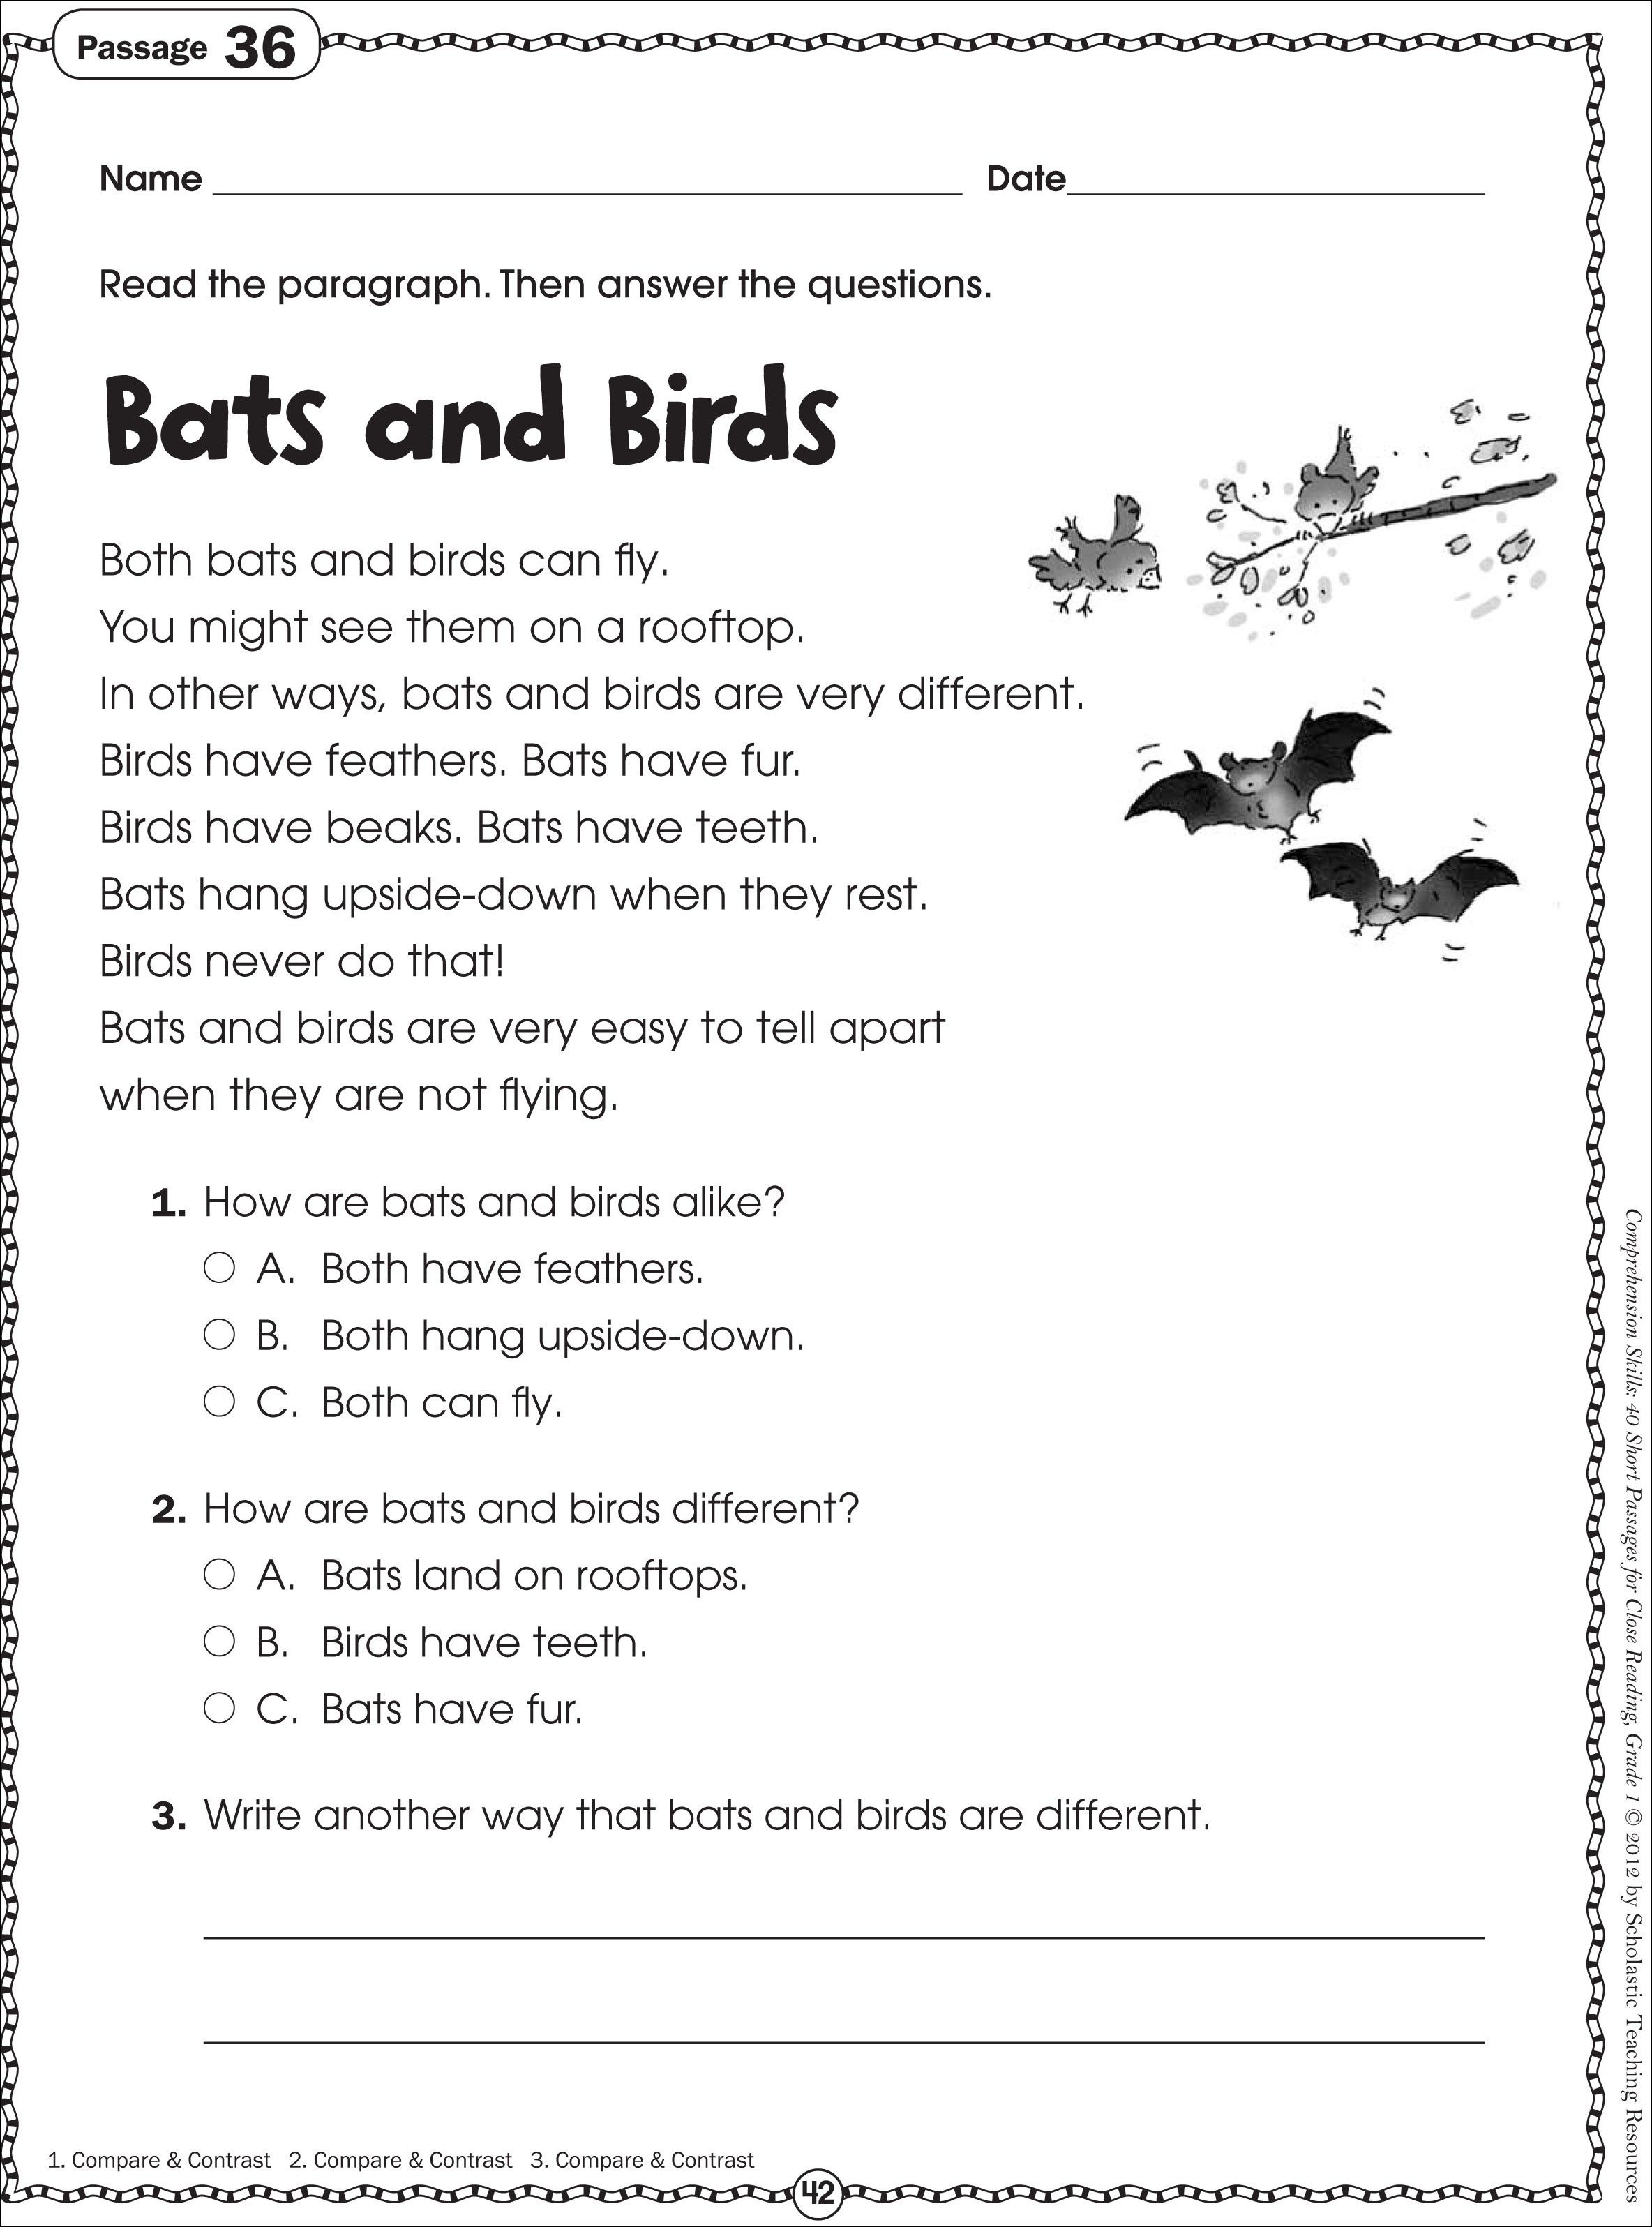 Free Printable Science Worksheets For 2nd Grade